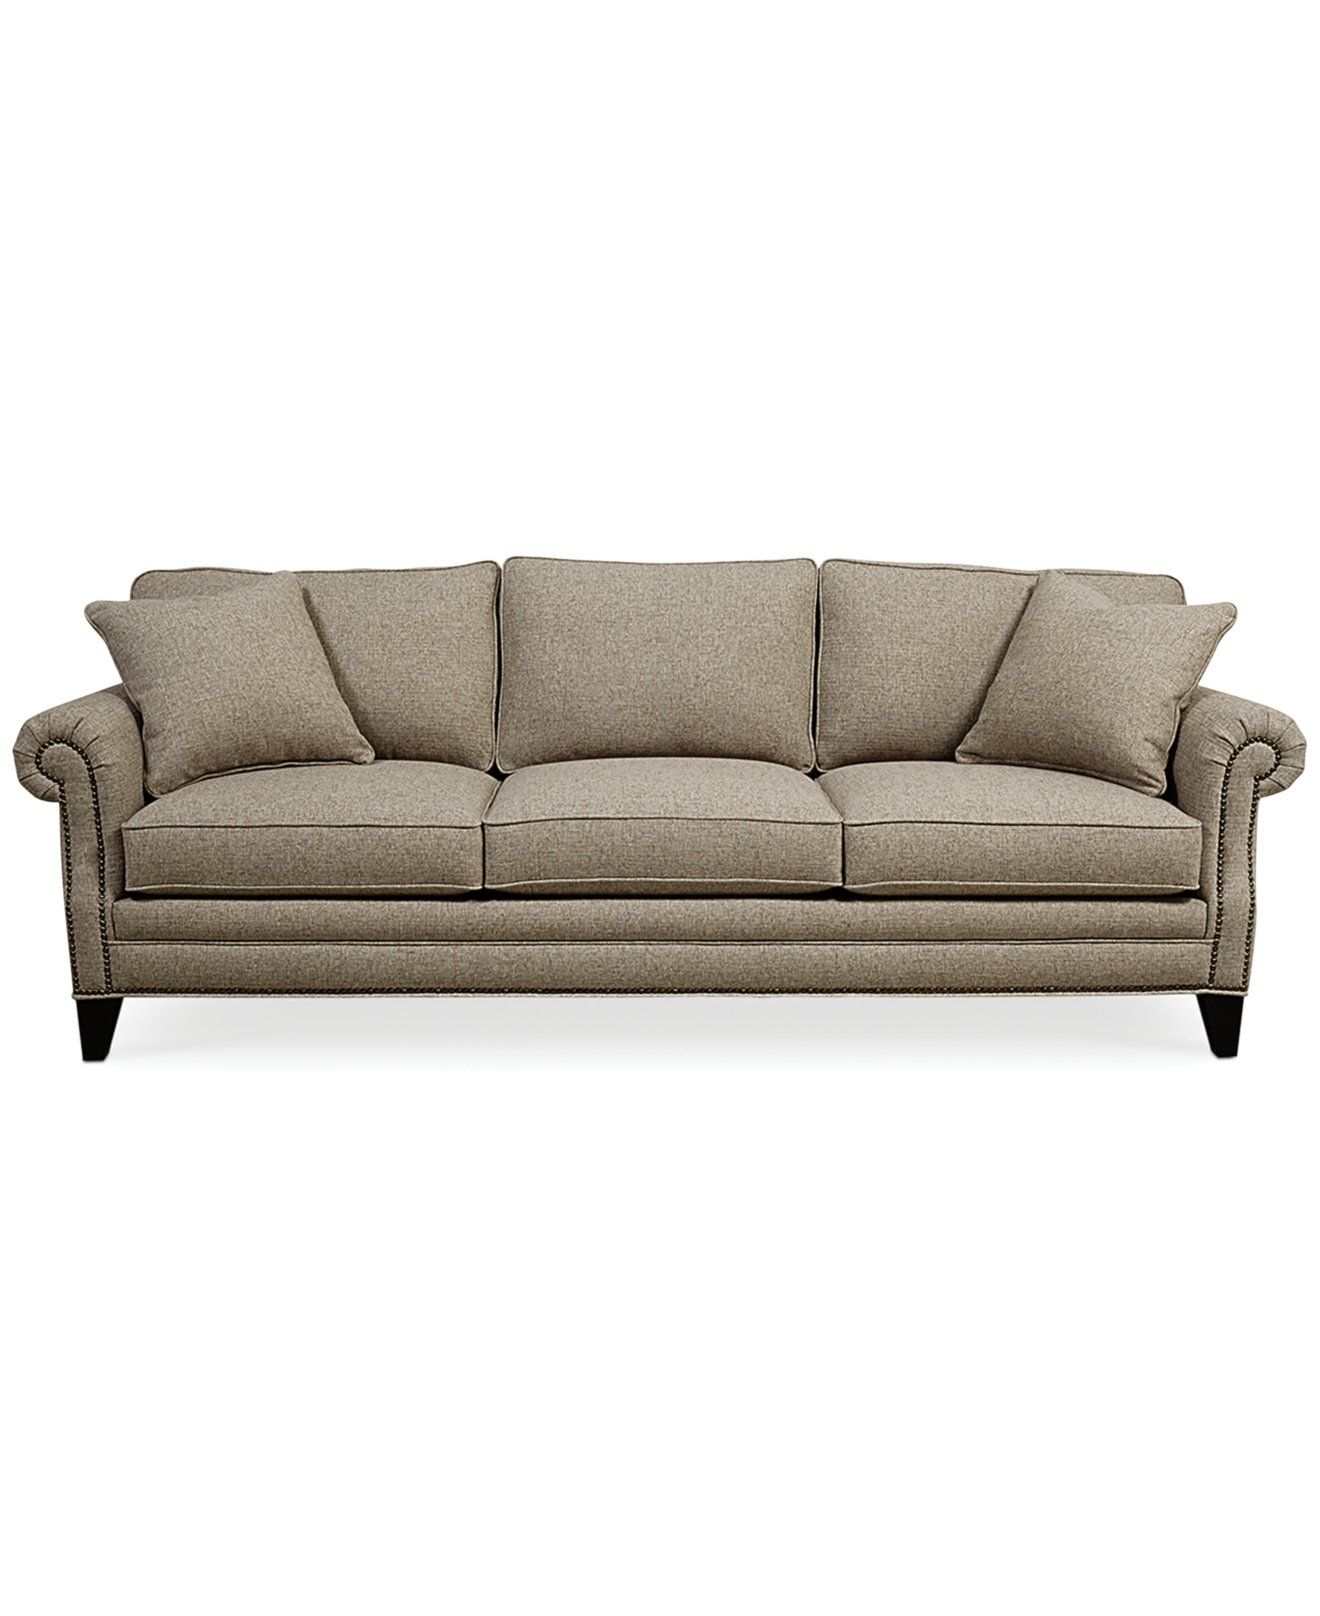 Scarlette Fabric Sofa Furniture Macy S Sofa Fabric Sofa